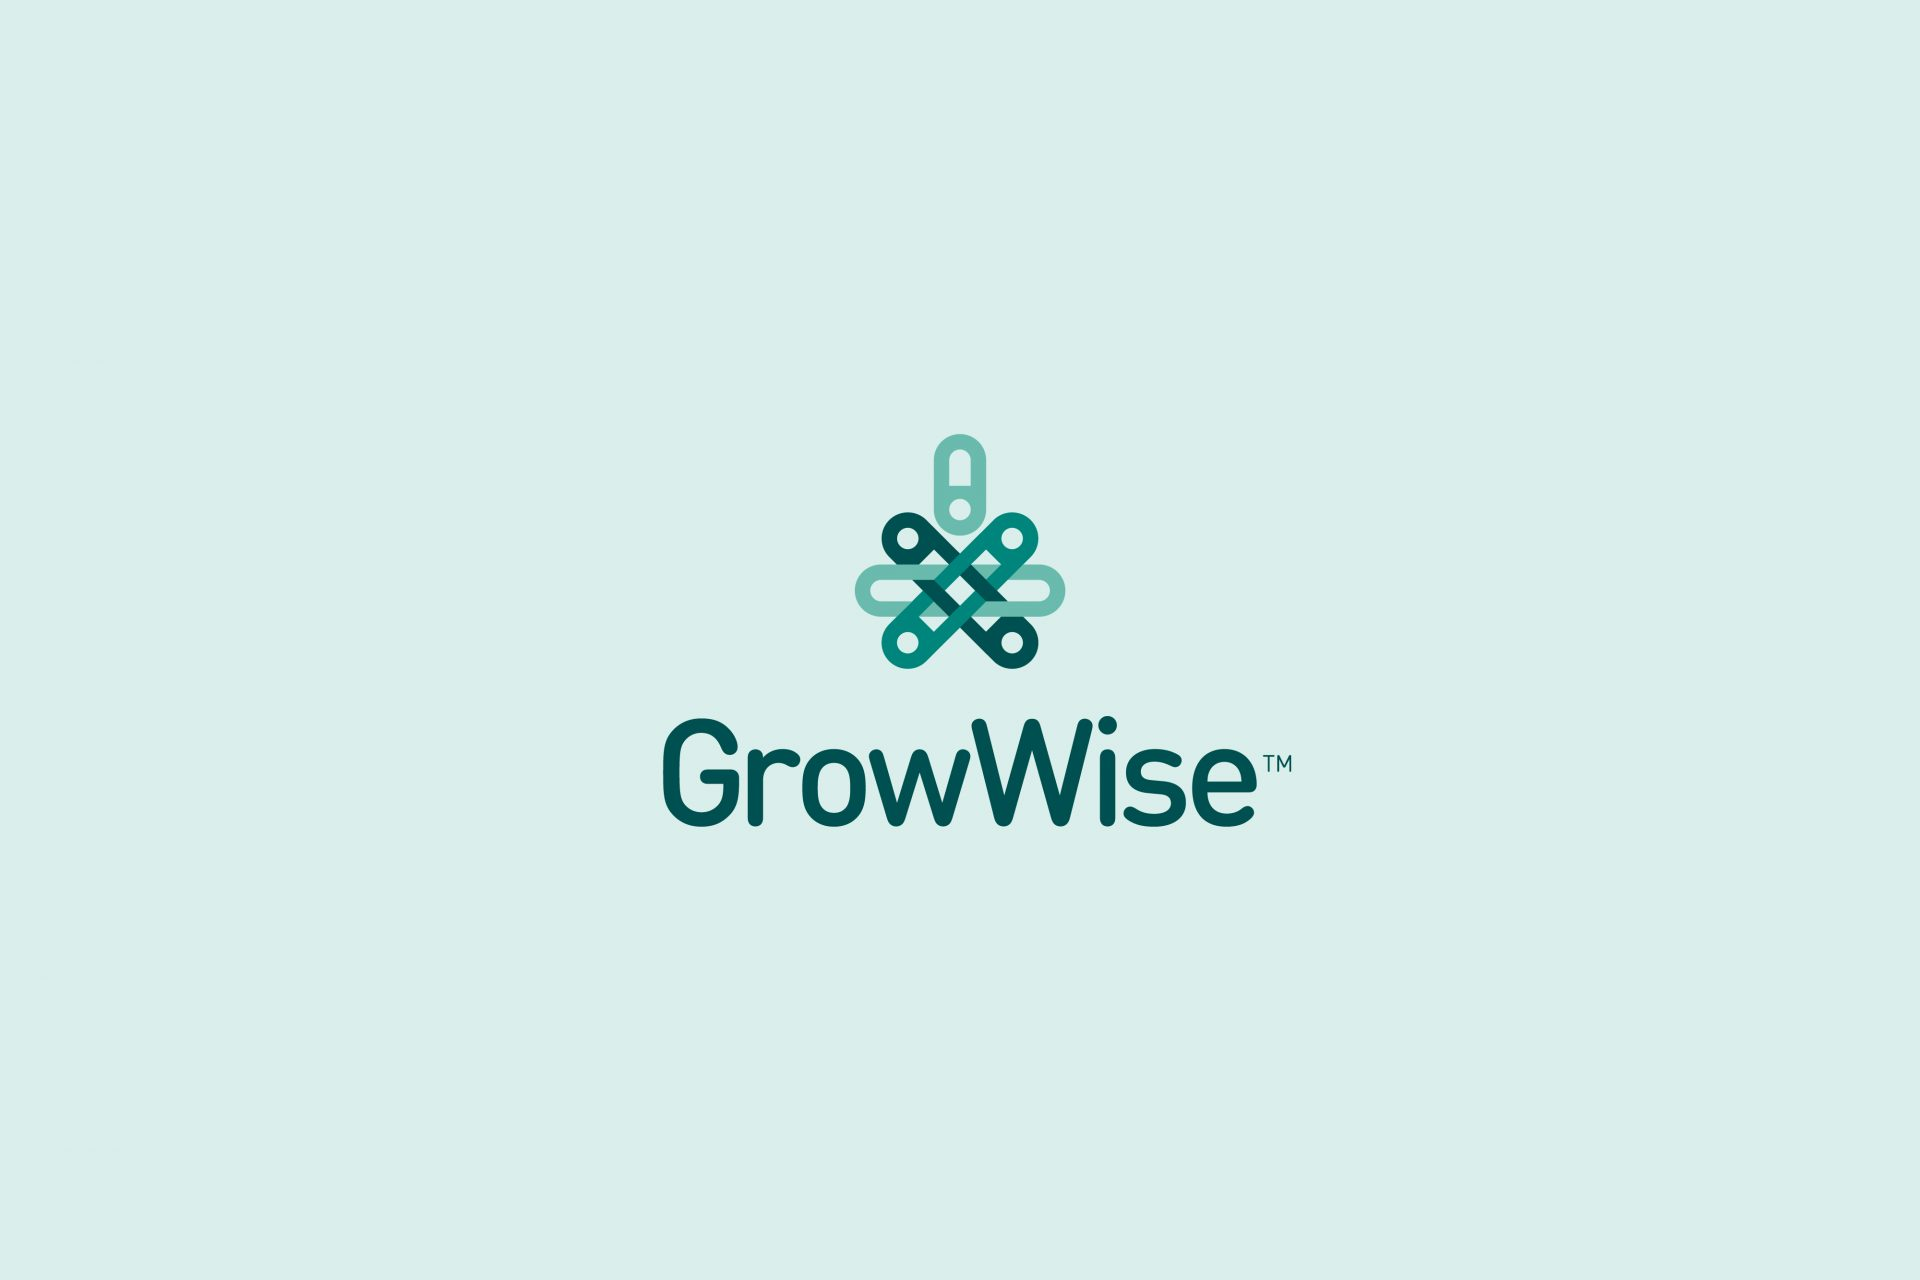 GrowWise logo